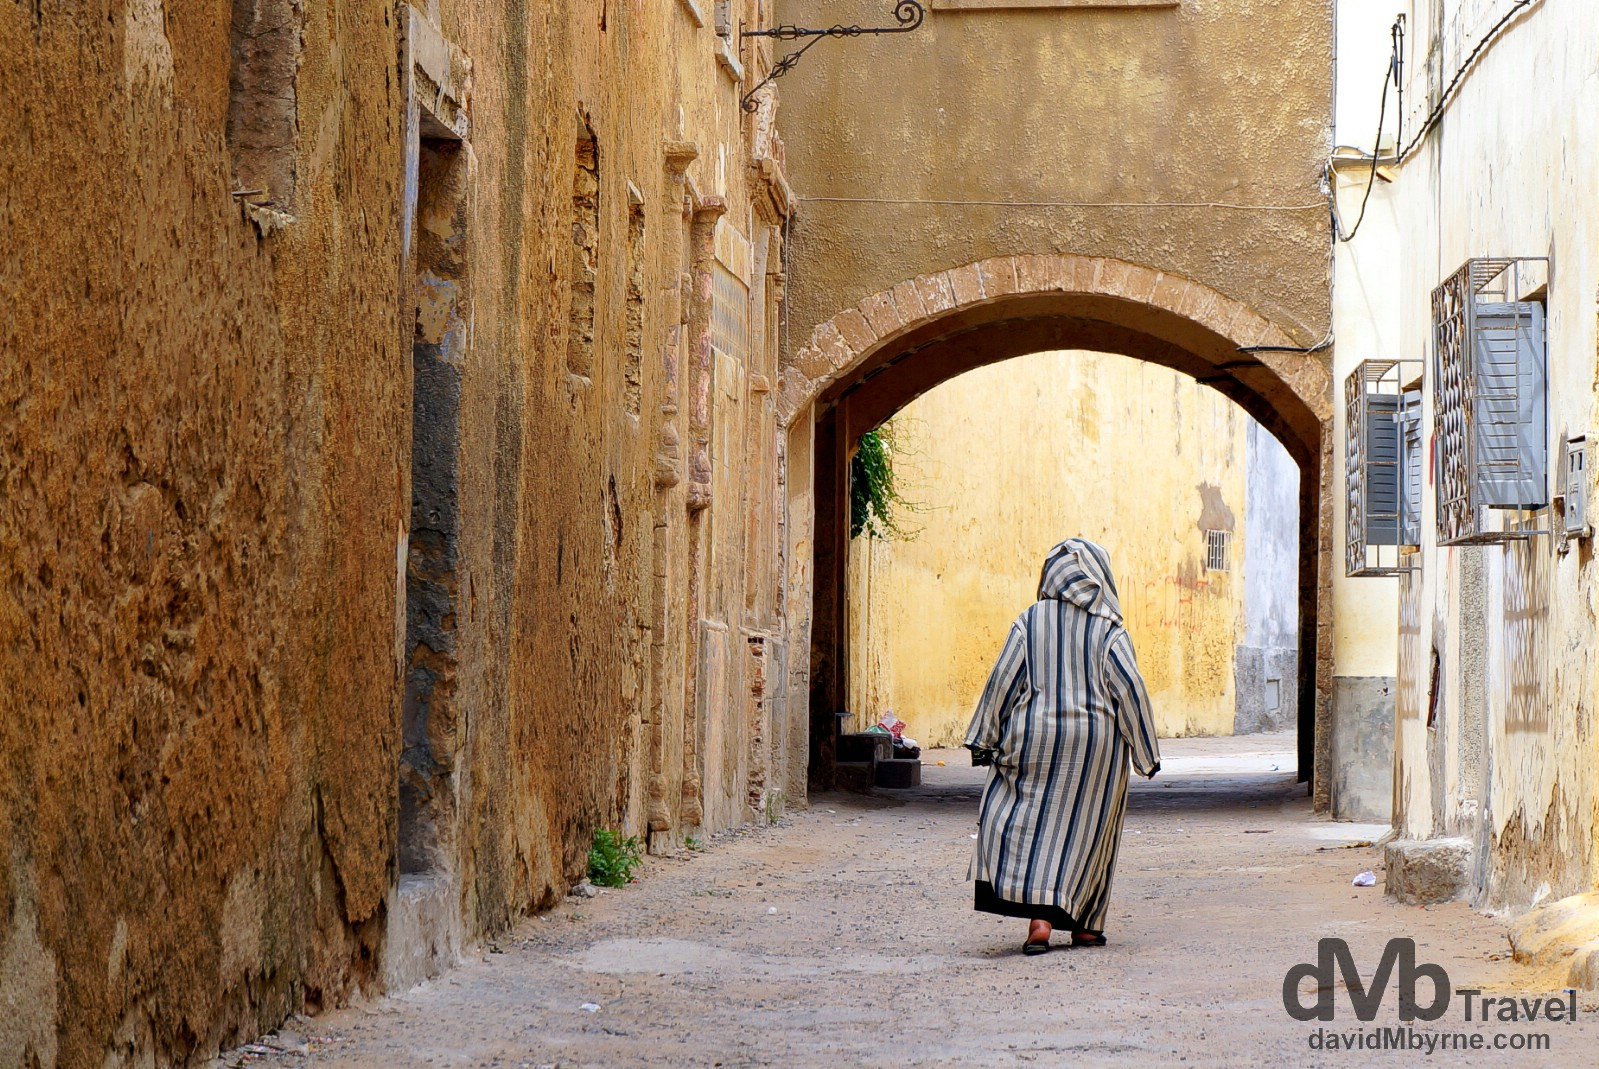 El Jadida Morocco  city pictures gallery : ... shaft of light. Cite Portugaise, El Jadida, Morocco. May 1, 2014